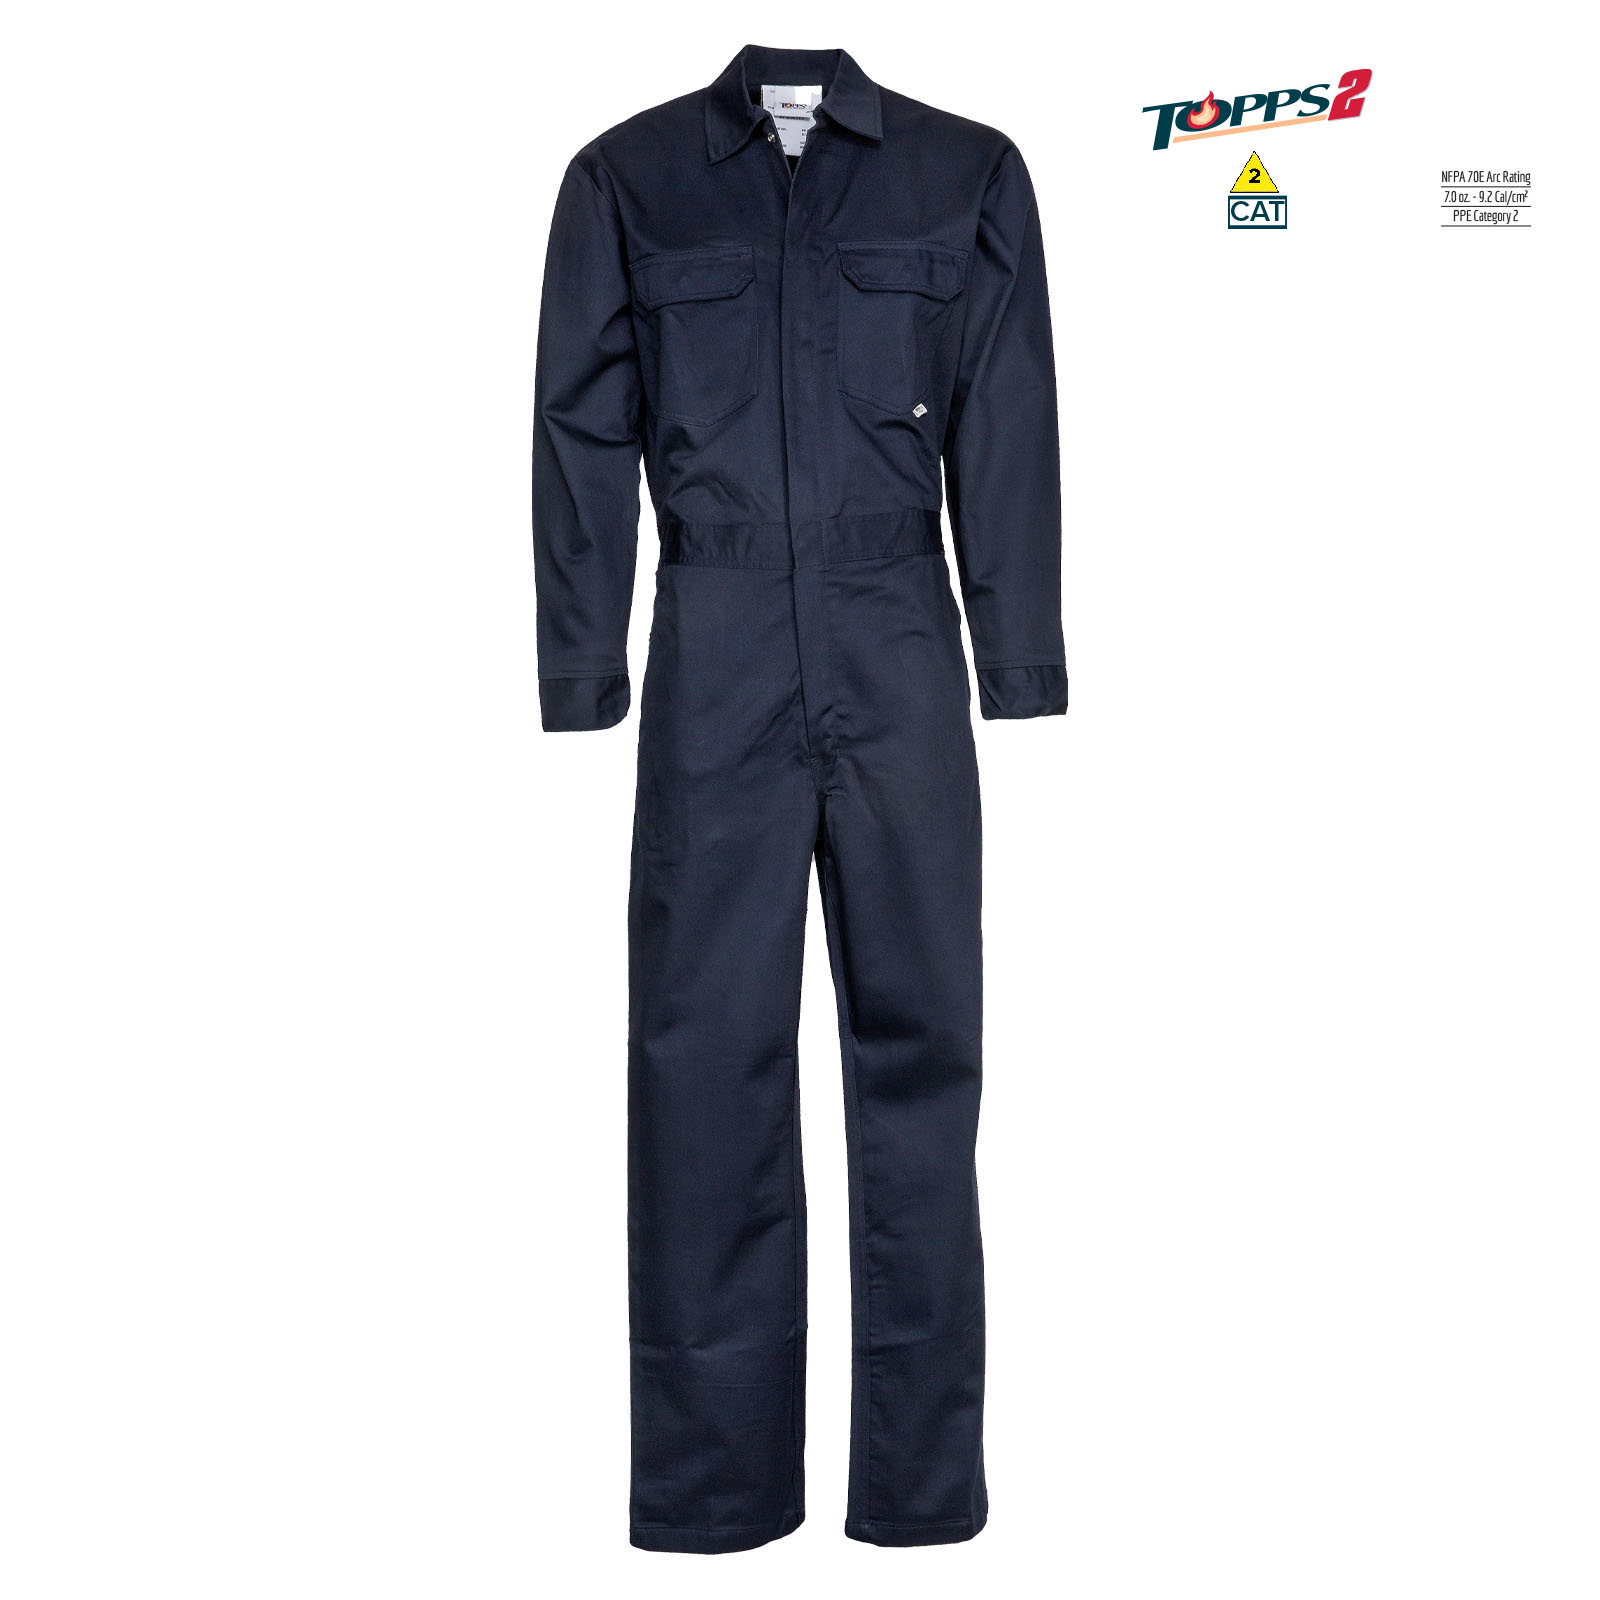 88/12 Cotton/Nylon Blend Flame Resistant Lightweight Economy Coverall-